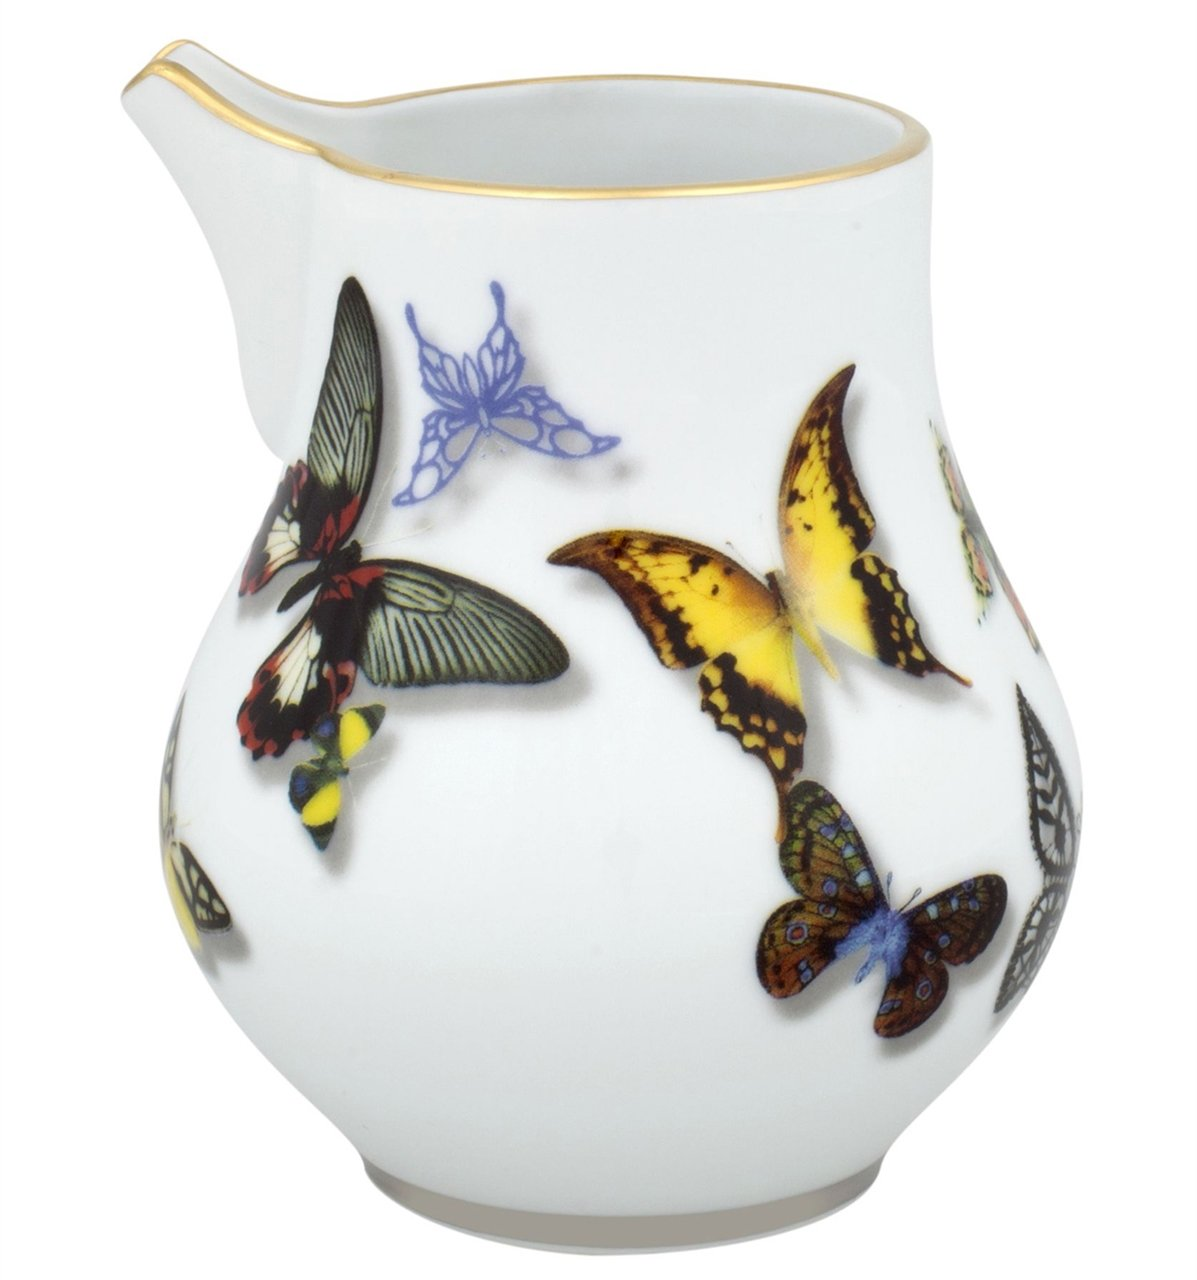 VISTA ALEGRE - Butterfly Parade by Christian Lacroix (Ref # 21117743) Porcelain Milk Jug by Unknown